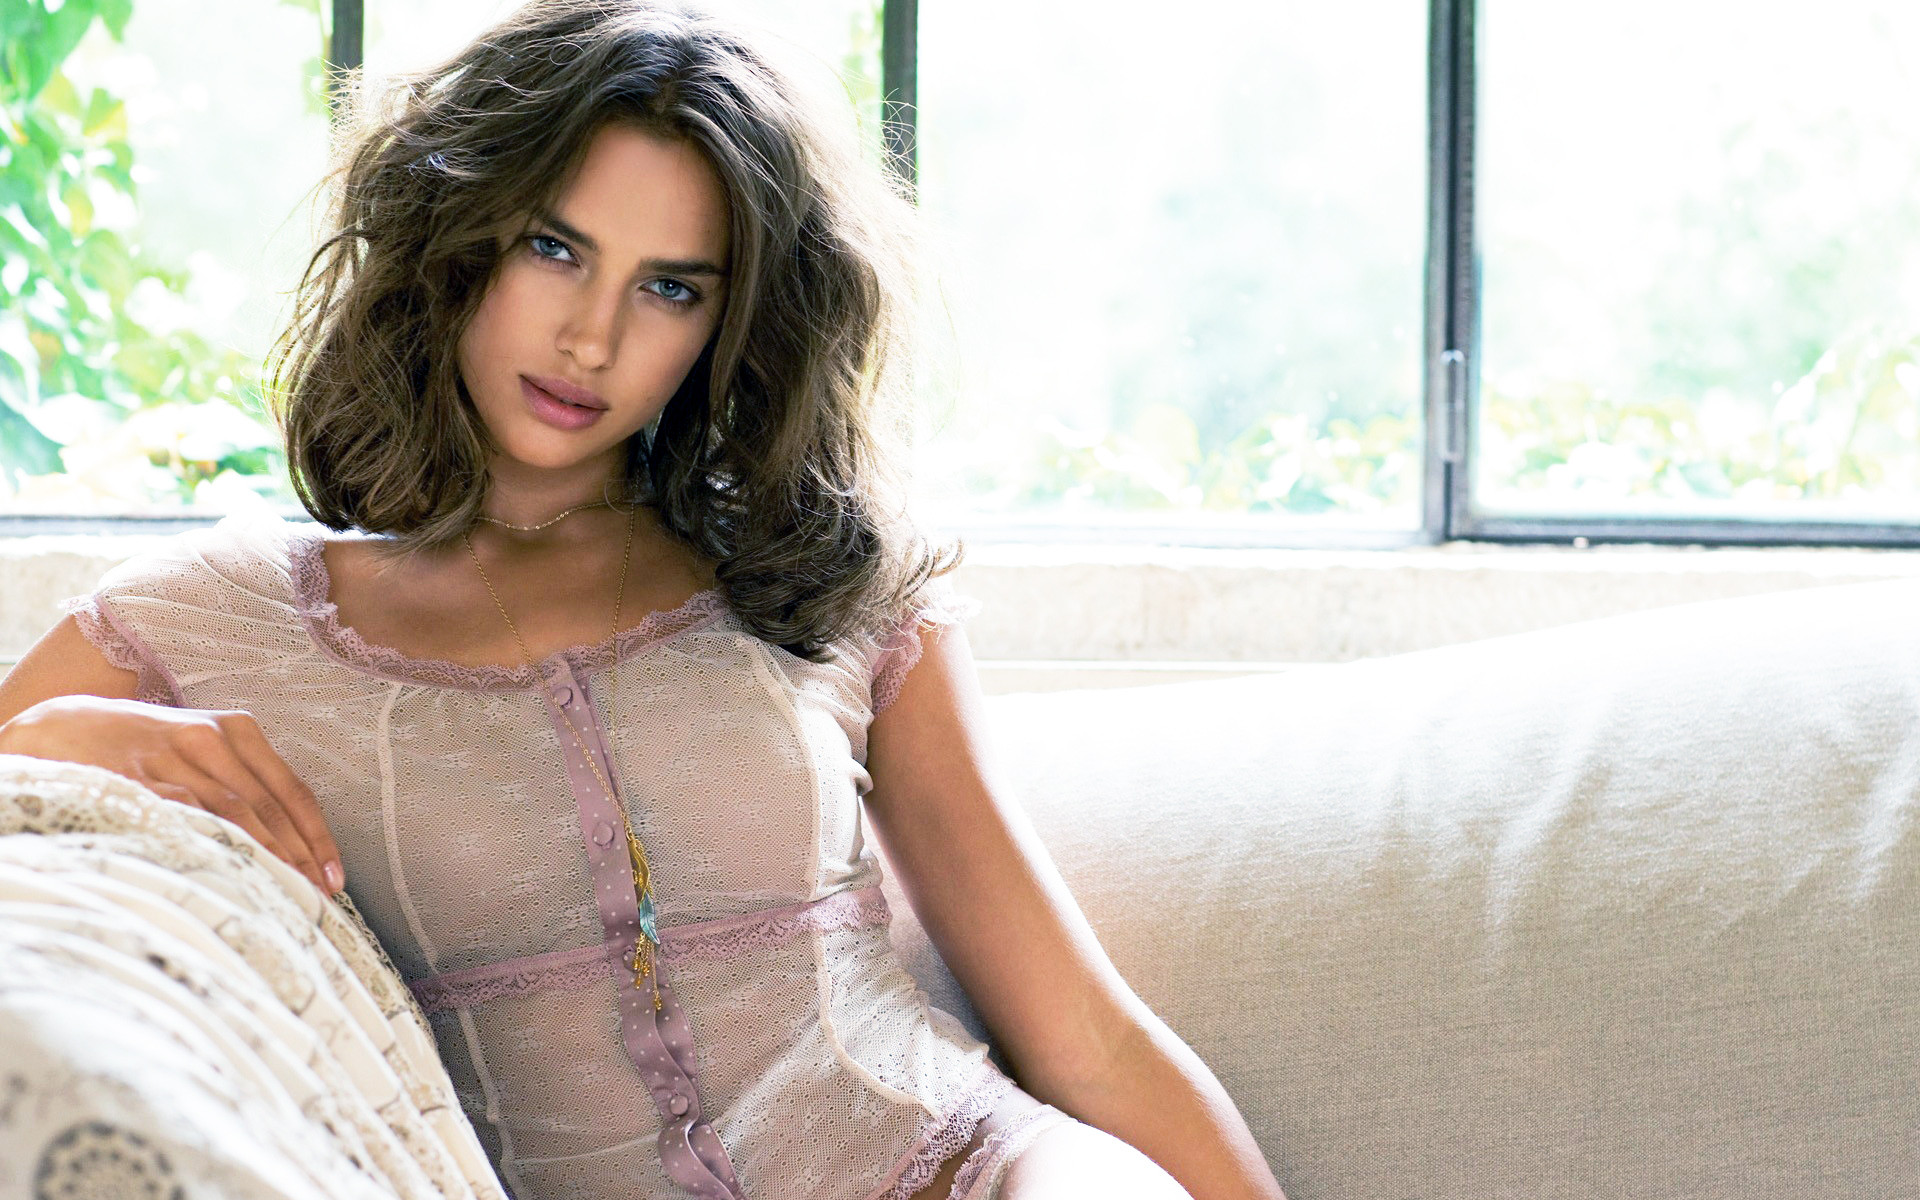 Irina Shayk 2014 wallpaper